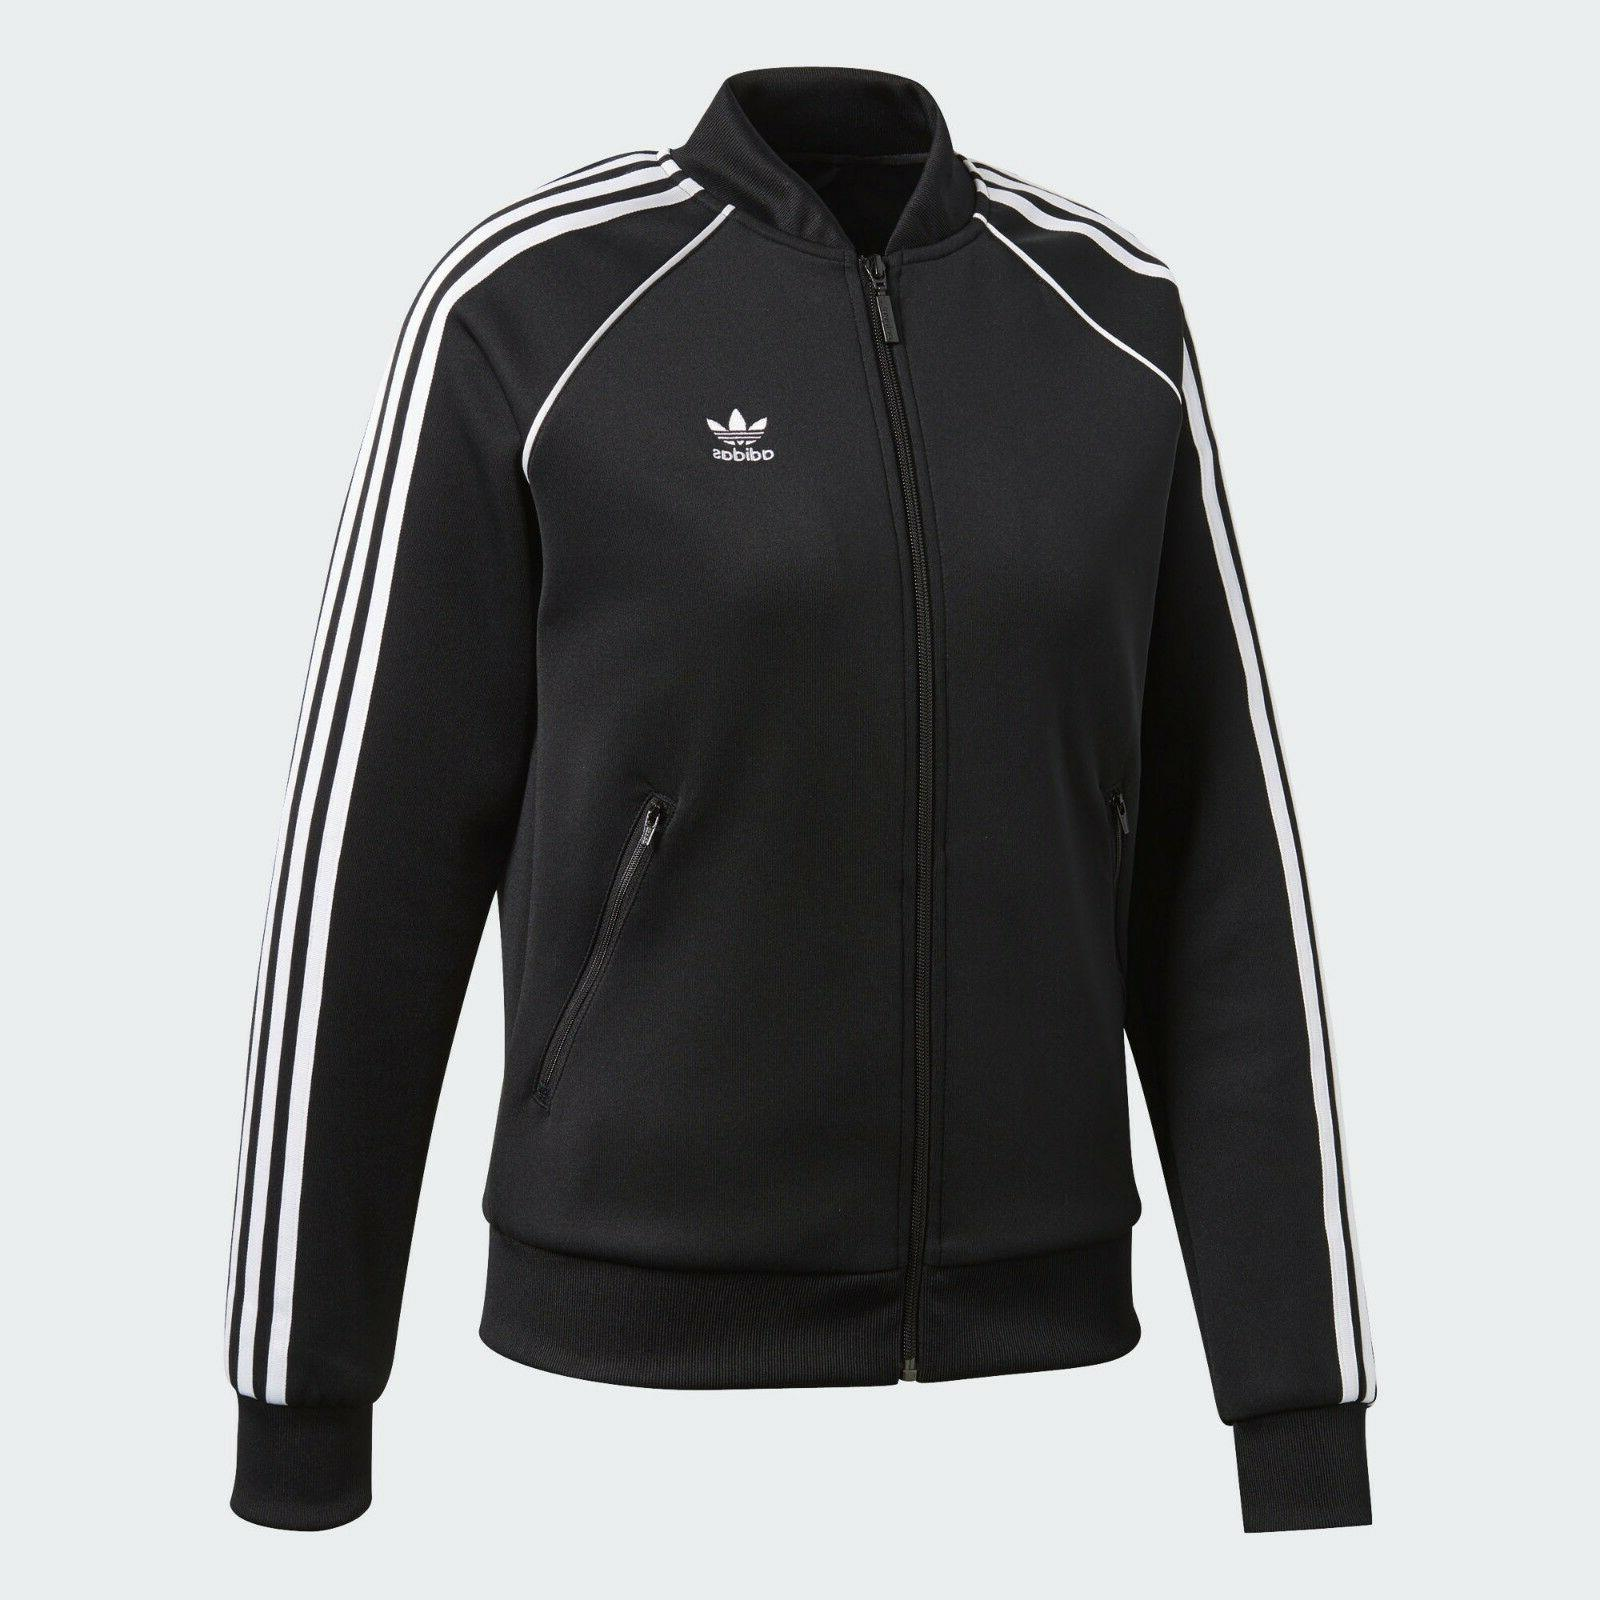 ADIDAS ORIGINALS SUPERSTAR WOMEN'S TRACK JACKET US SIZE S ST